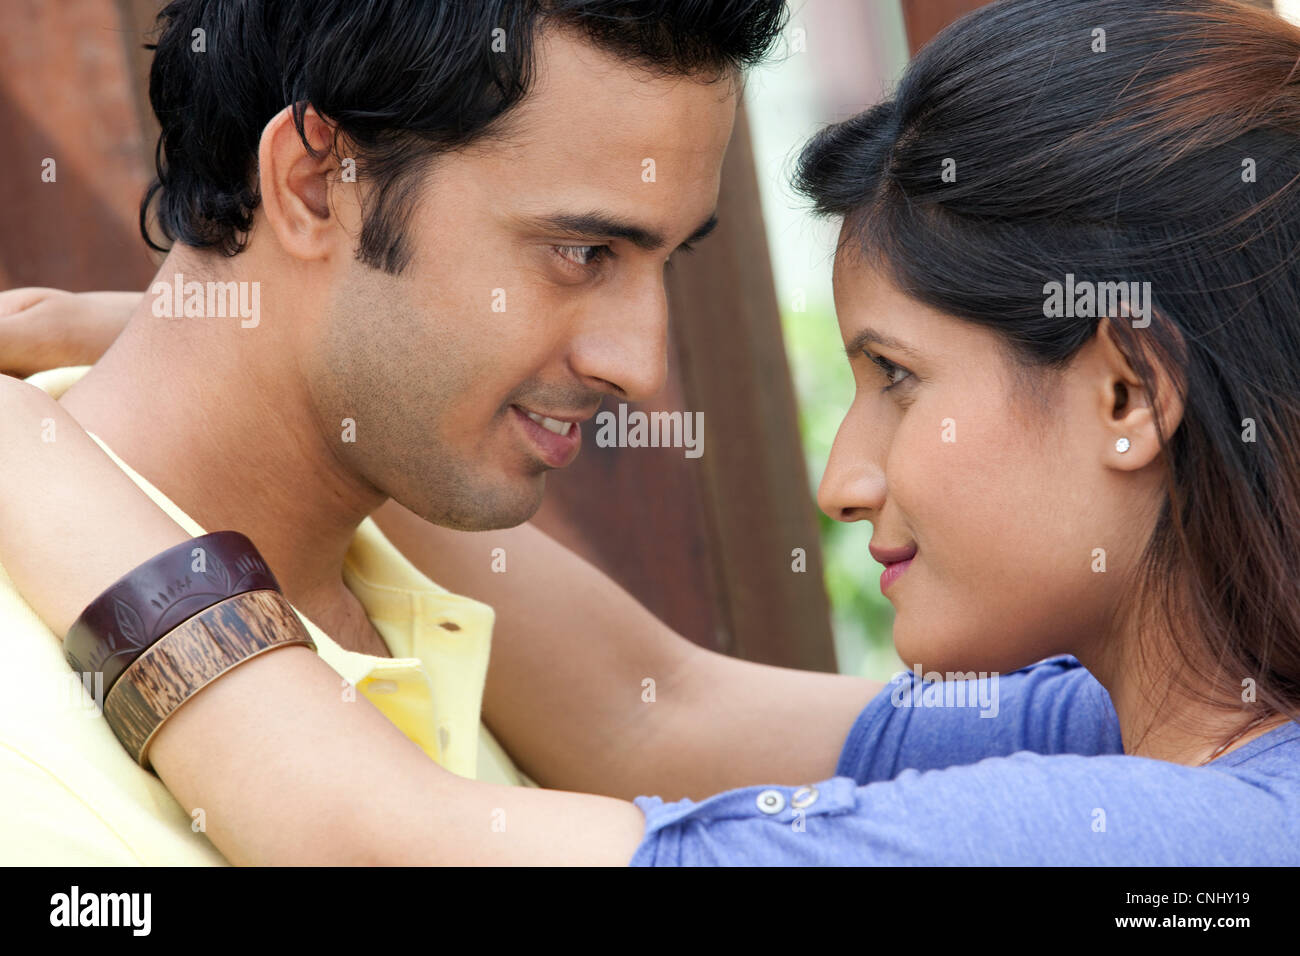 Couple looking into each others eyes - Stock Image